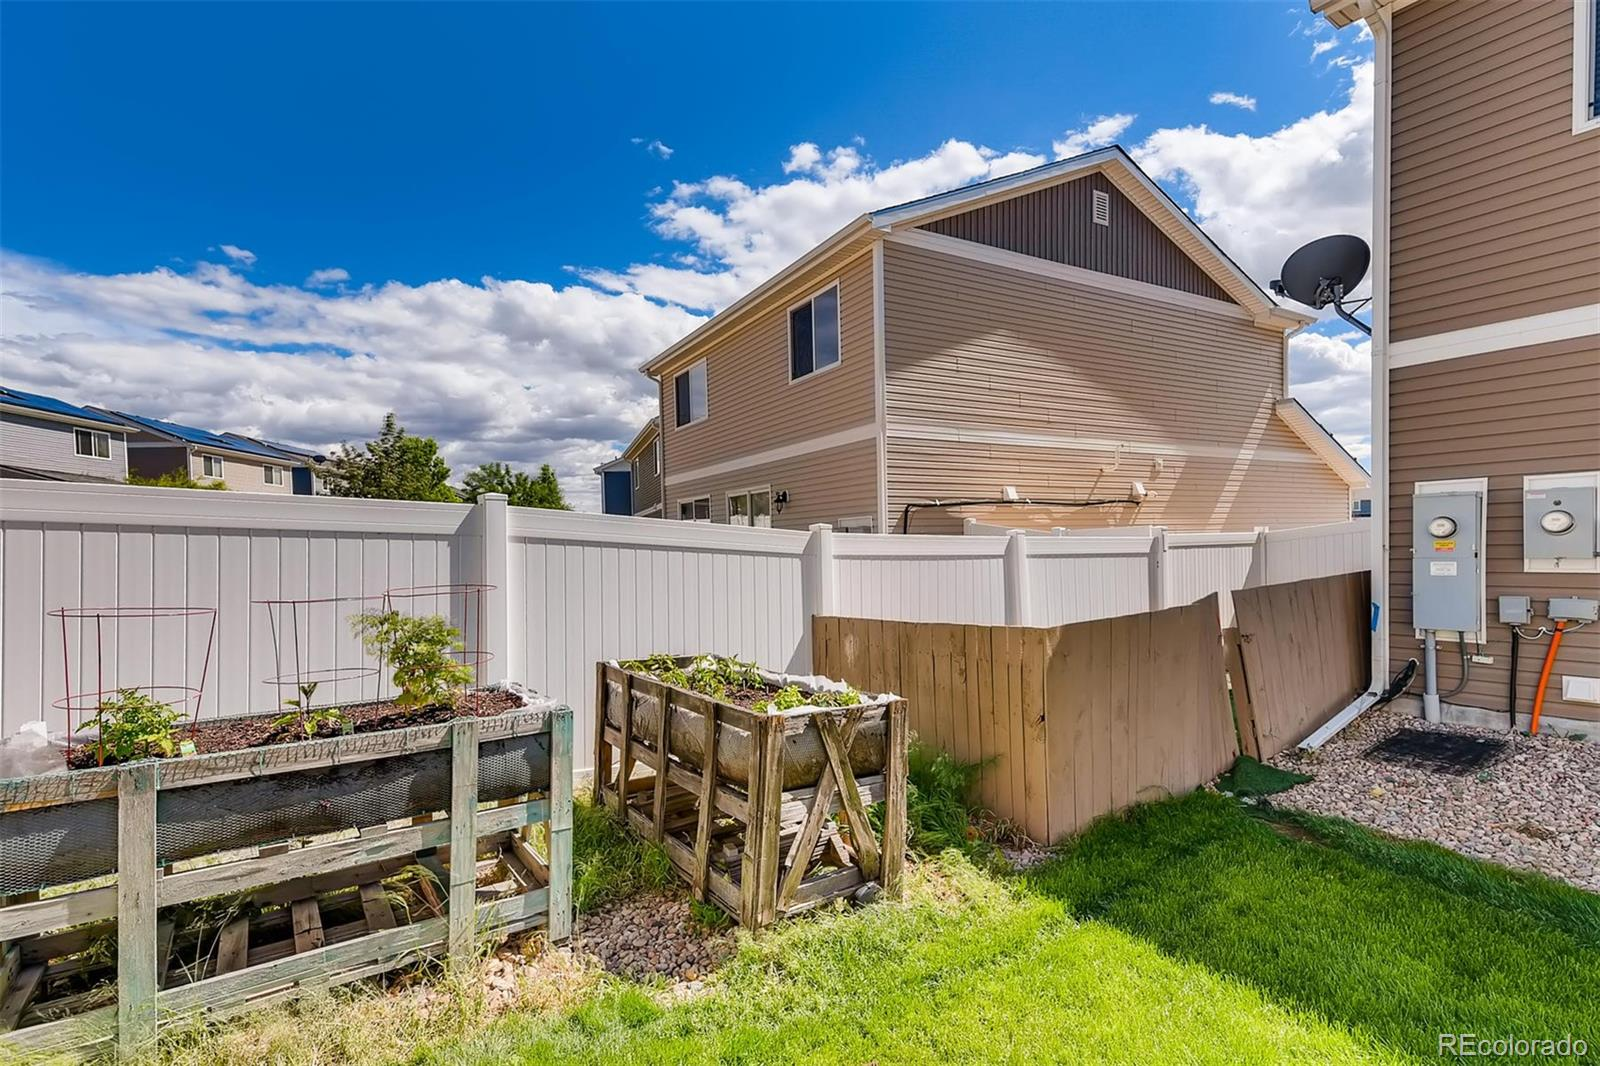 MLS# 2235815 - 28 - 5568 Malaya Street, Denver, CO 80249